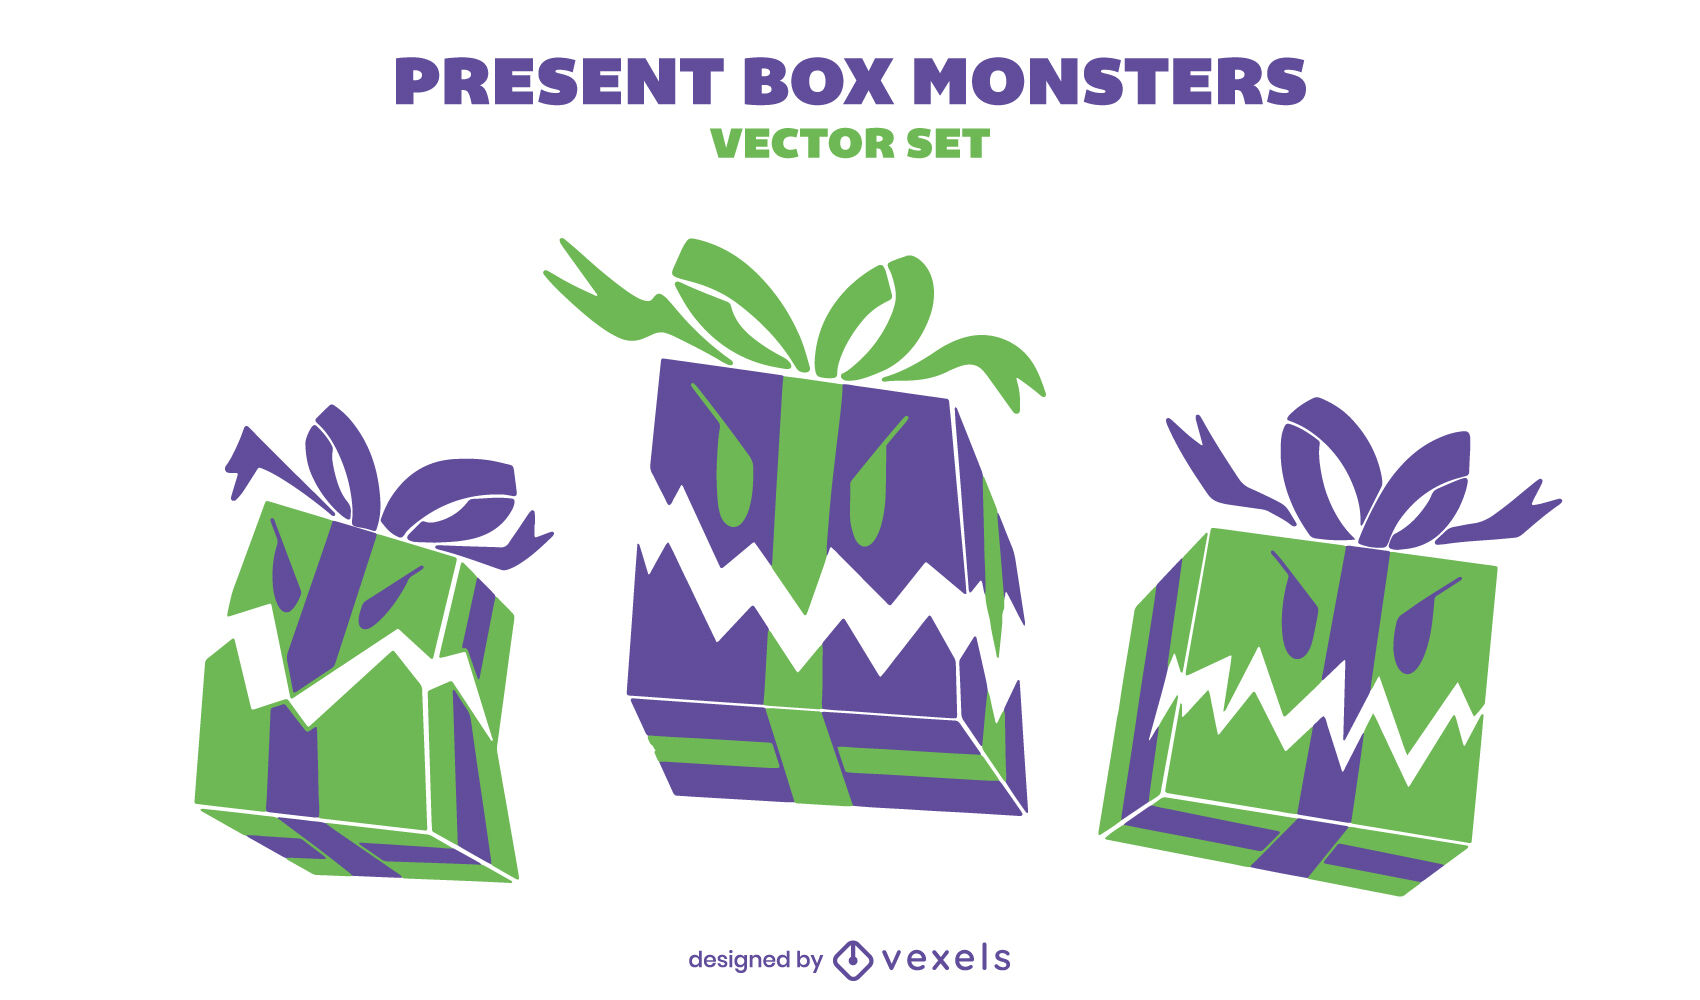 Angry gift box monster presents trio set